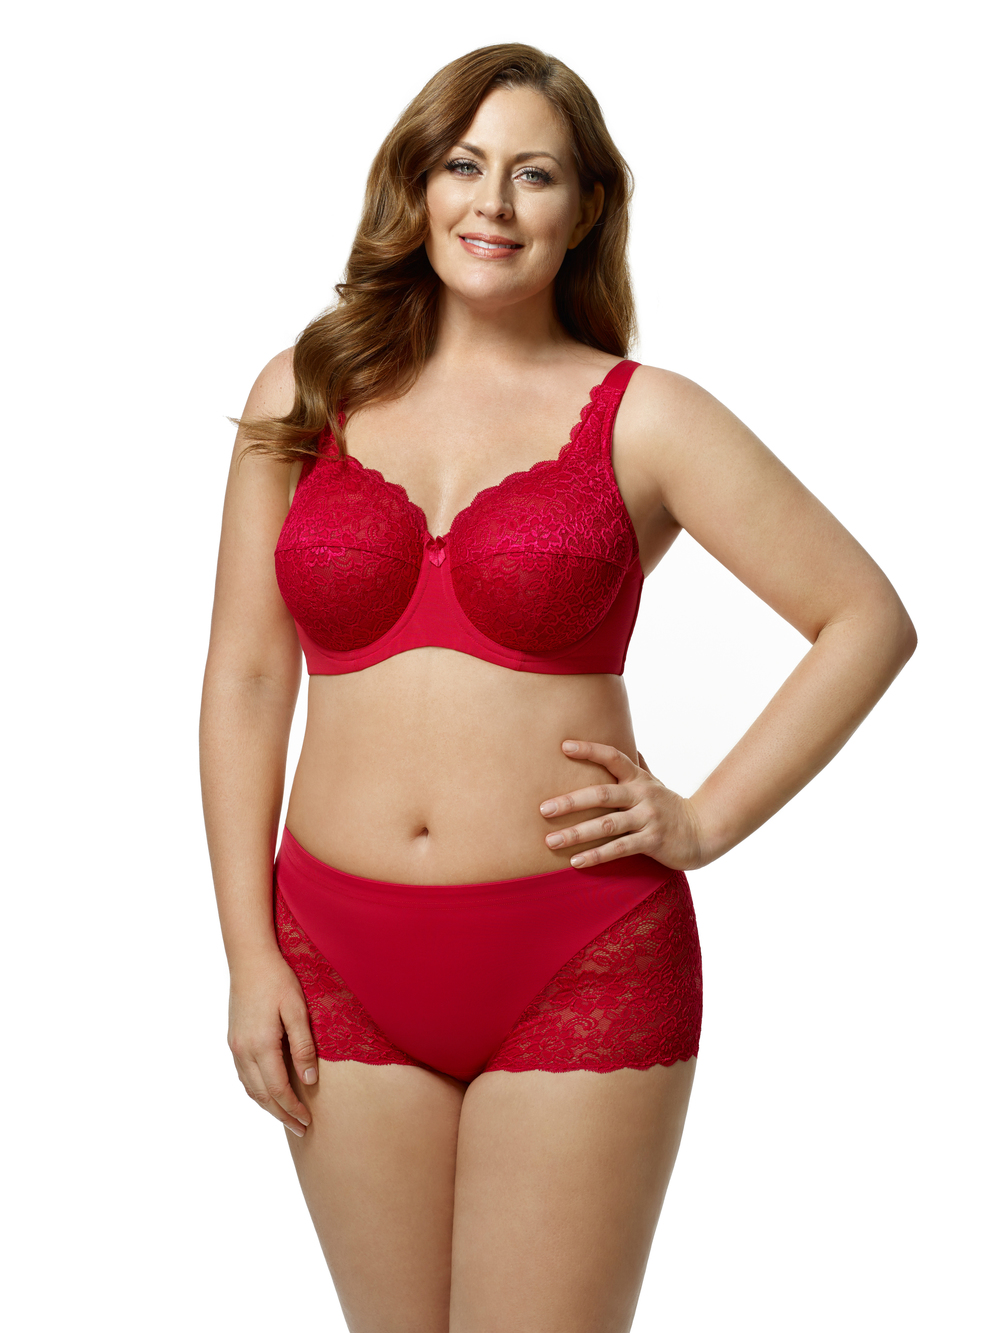 c75224e14 Stretch Lace Full Coverage Underwire — Elila